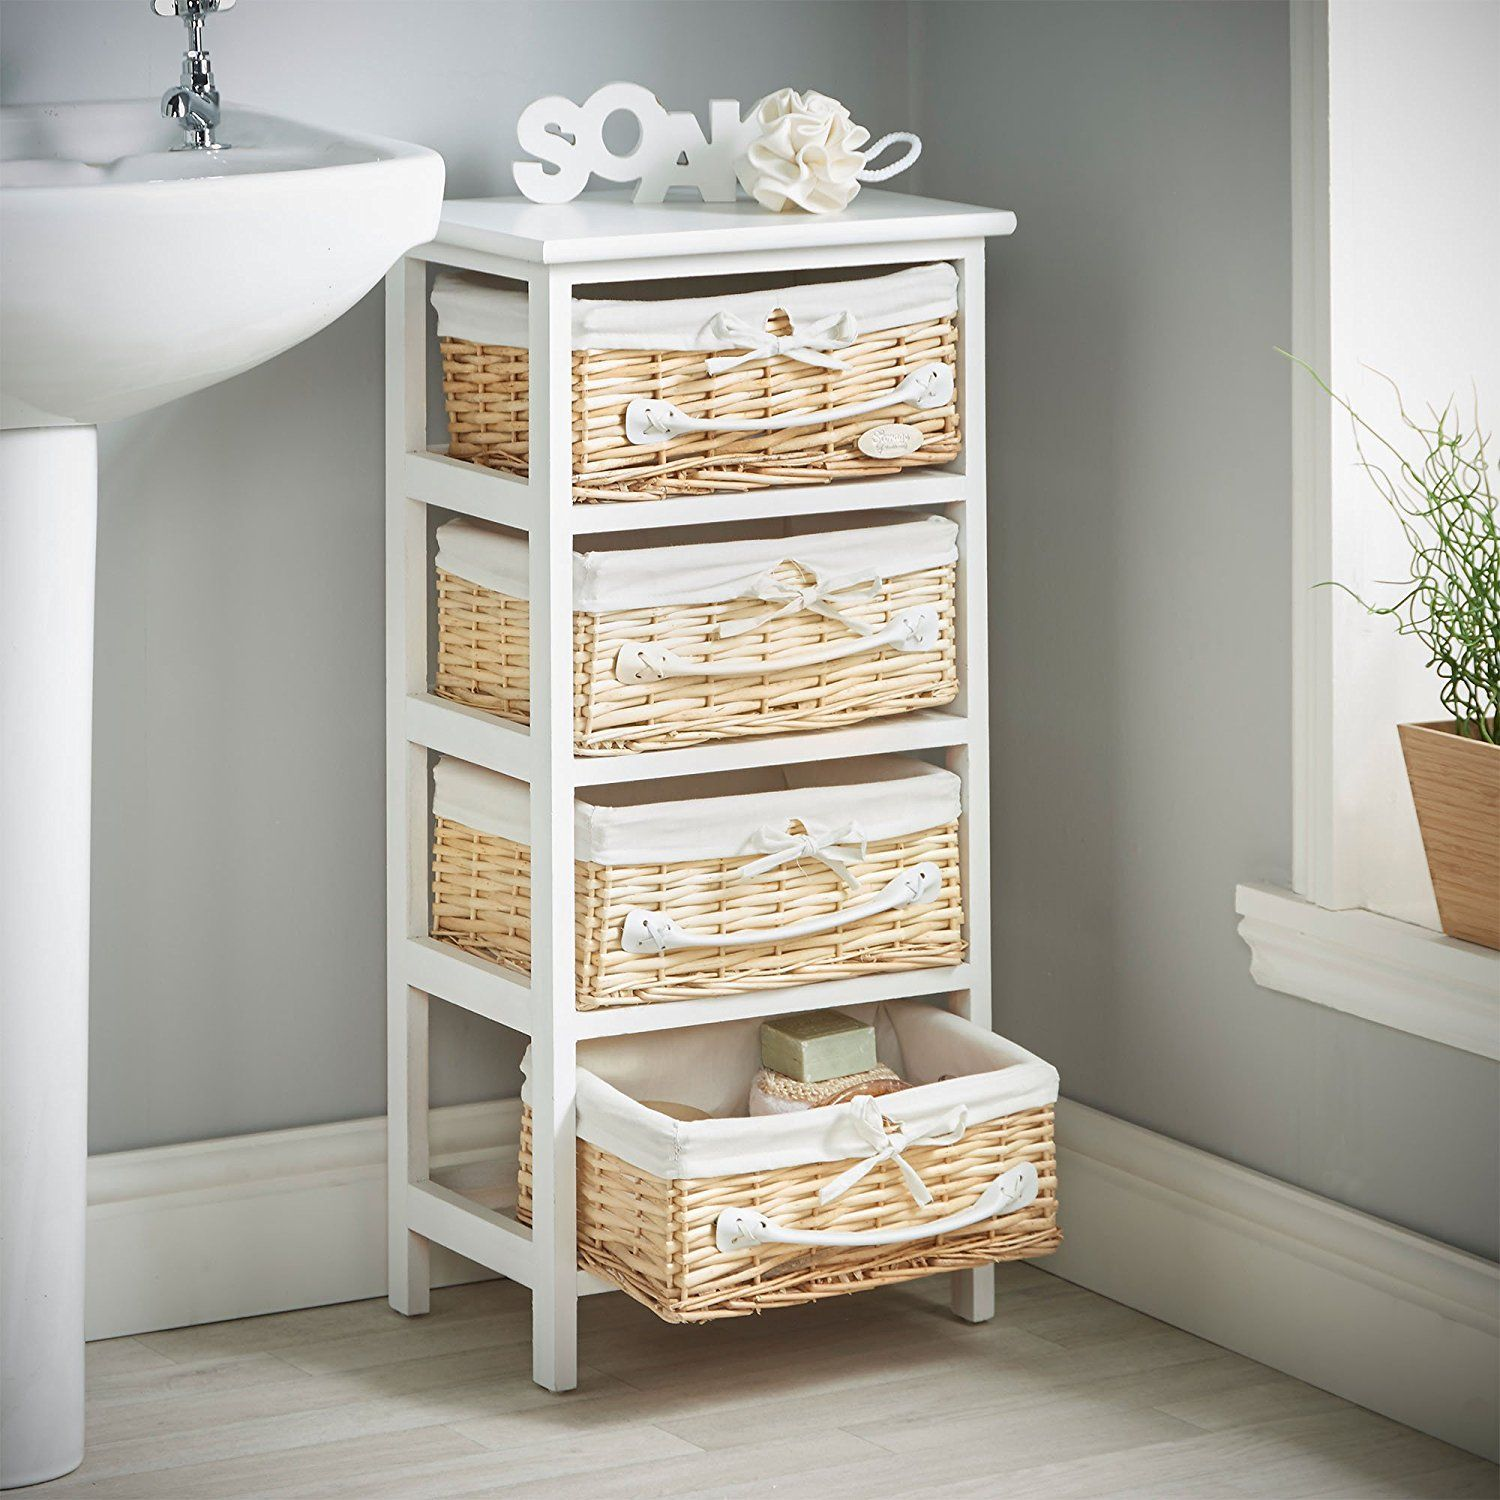 Vonhaus 4 Drawer Unit Wicker Basket Storage For Bedroom Or Bathroom White Amazon Co Uk Kitche Bathroom Storage Units Wicker Baskets Storage Drawer Unit